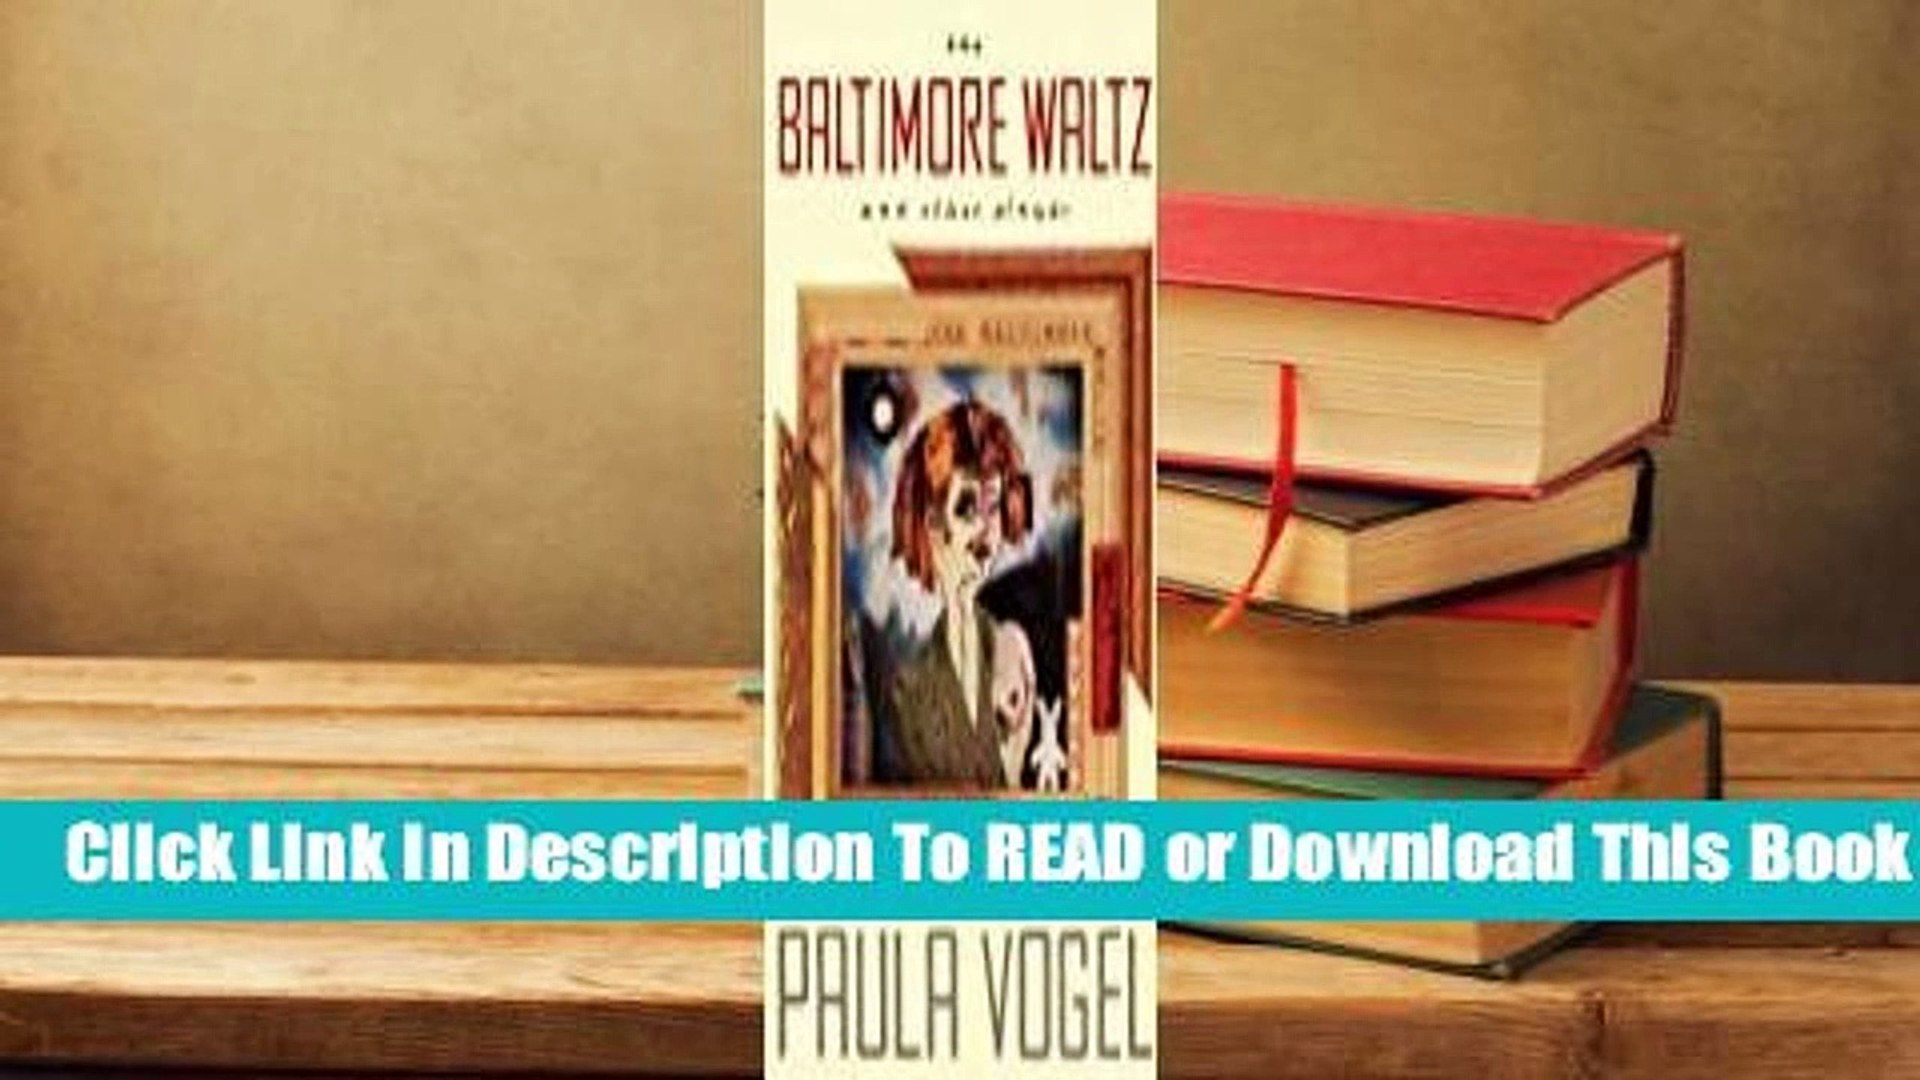 About For Books  The Baltimore Waltz and Other Plays  Review